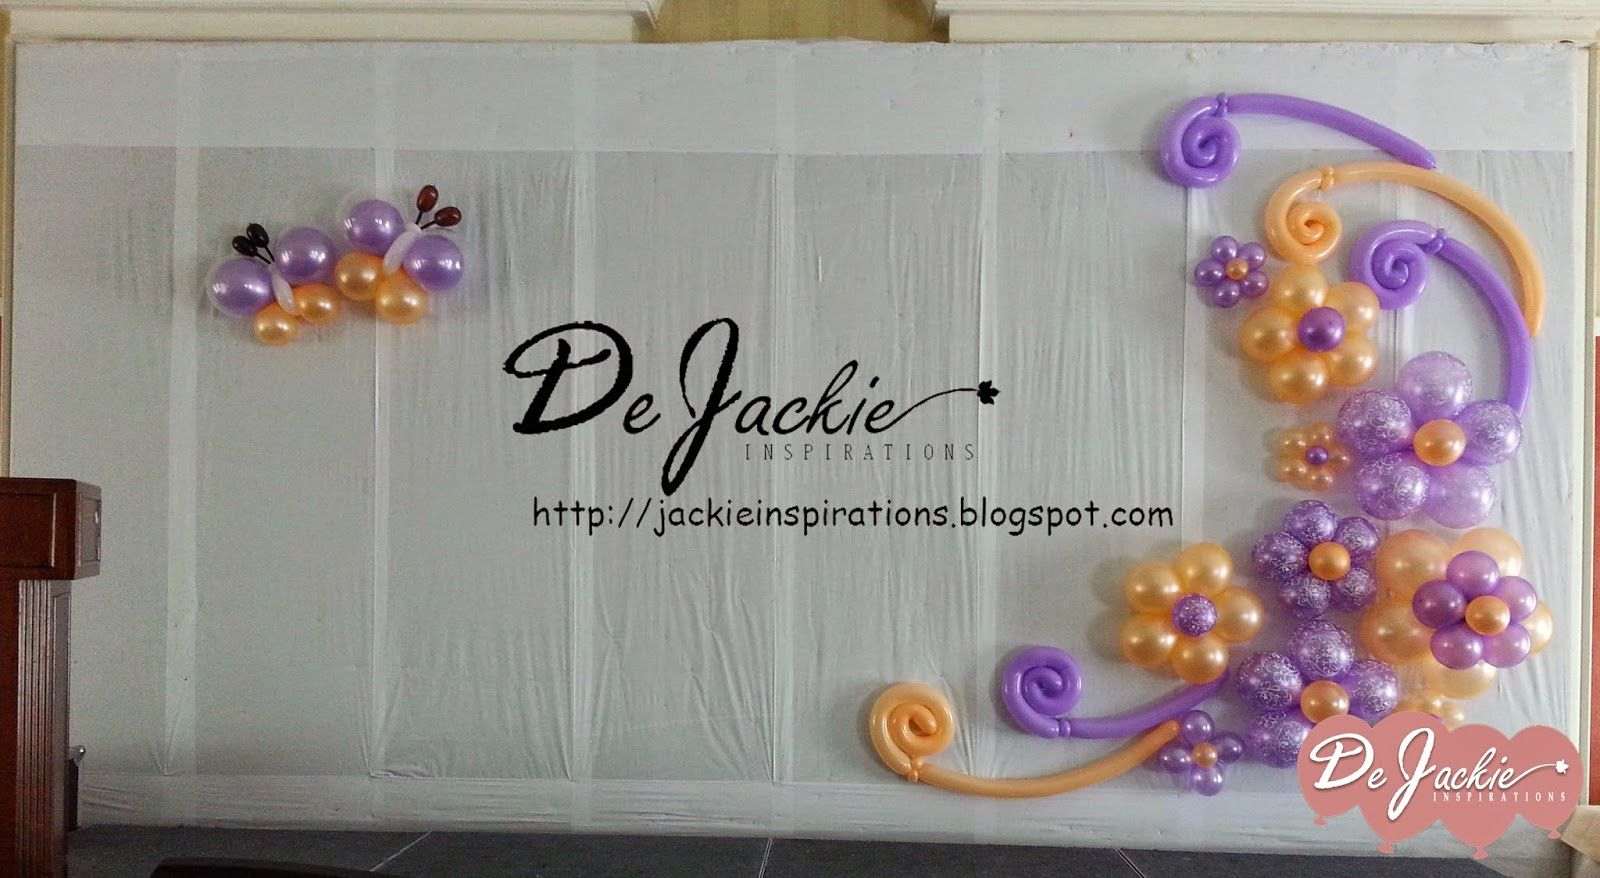 Balloon decorations for weddings birthday parties balloon back drop by jackie inspirations junglespirit Choice Image